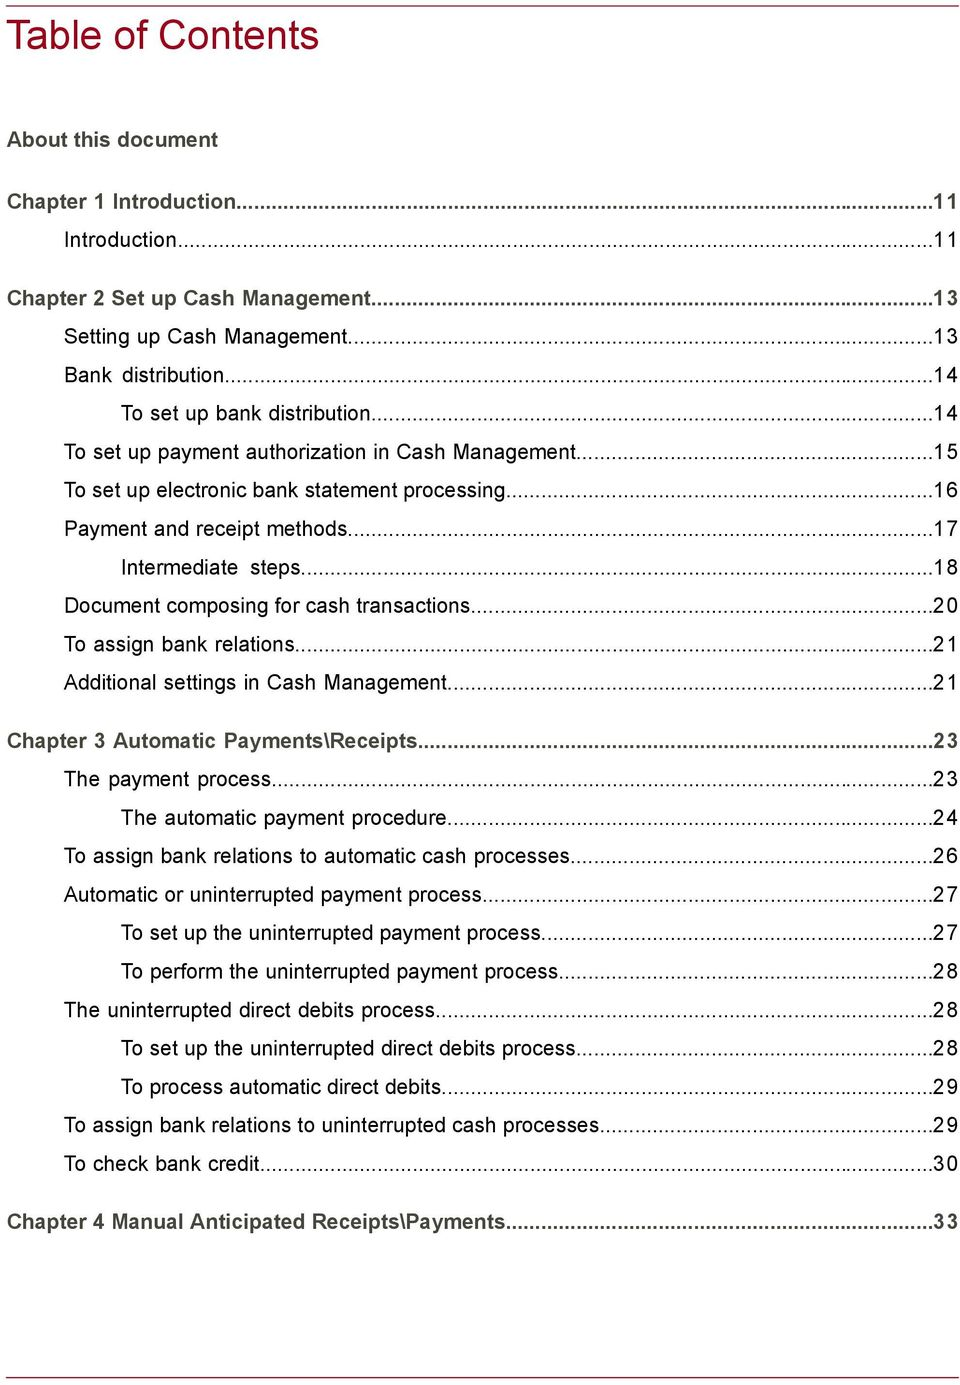 ..18 Document composing for cash transactions...20 To assign bank relations...21 Additional settings in Cash Management...21 Chapter 3 Automatic Payments\Receipts...23 The payment process.